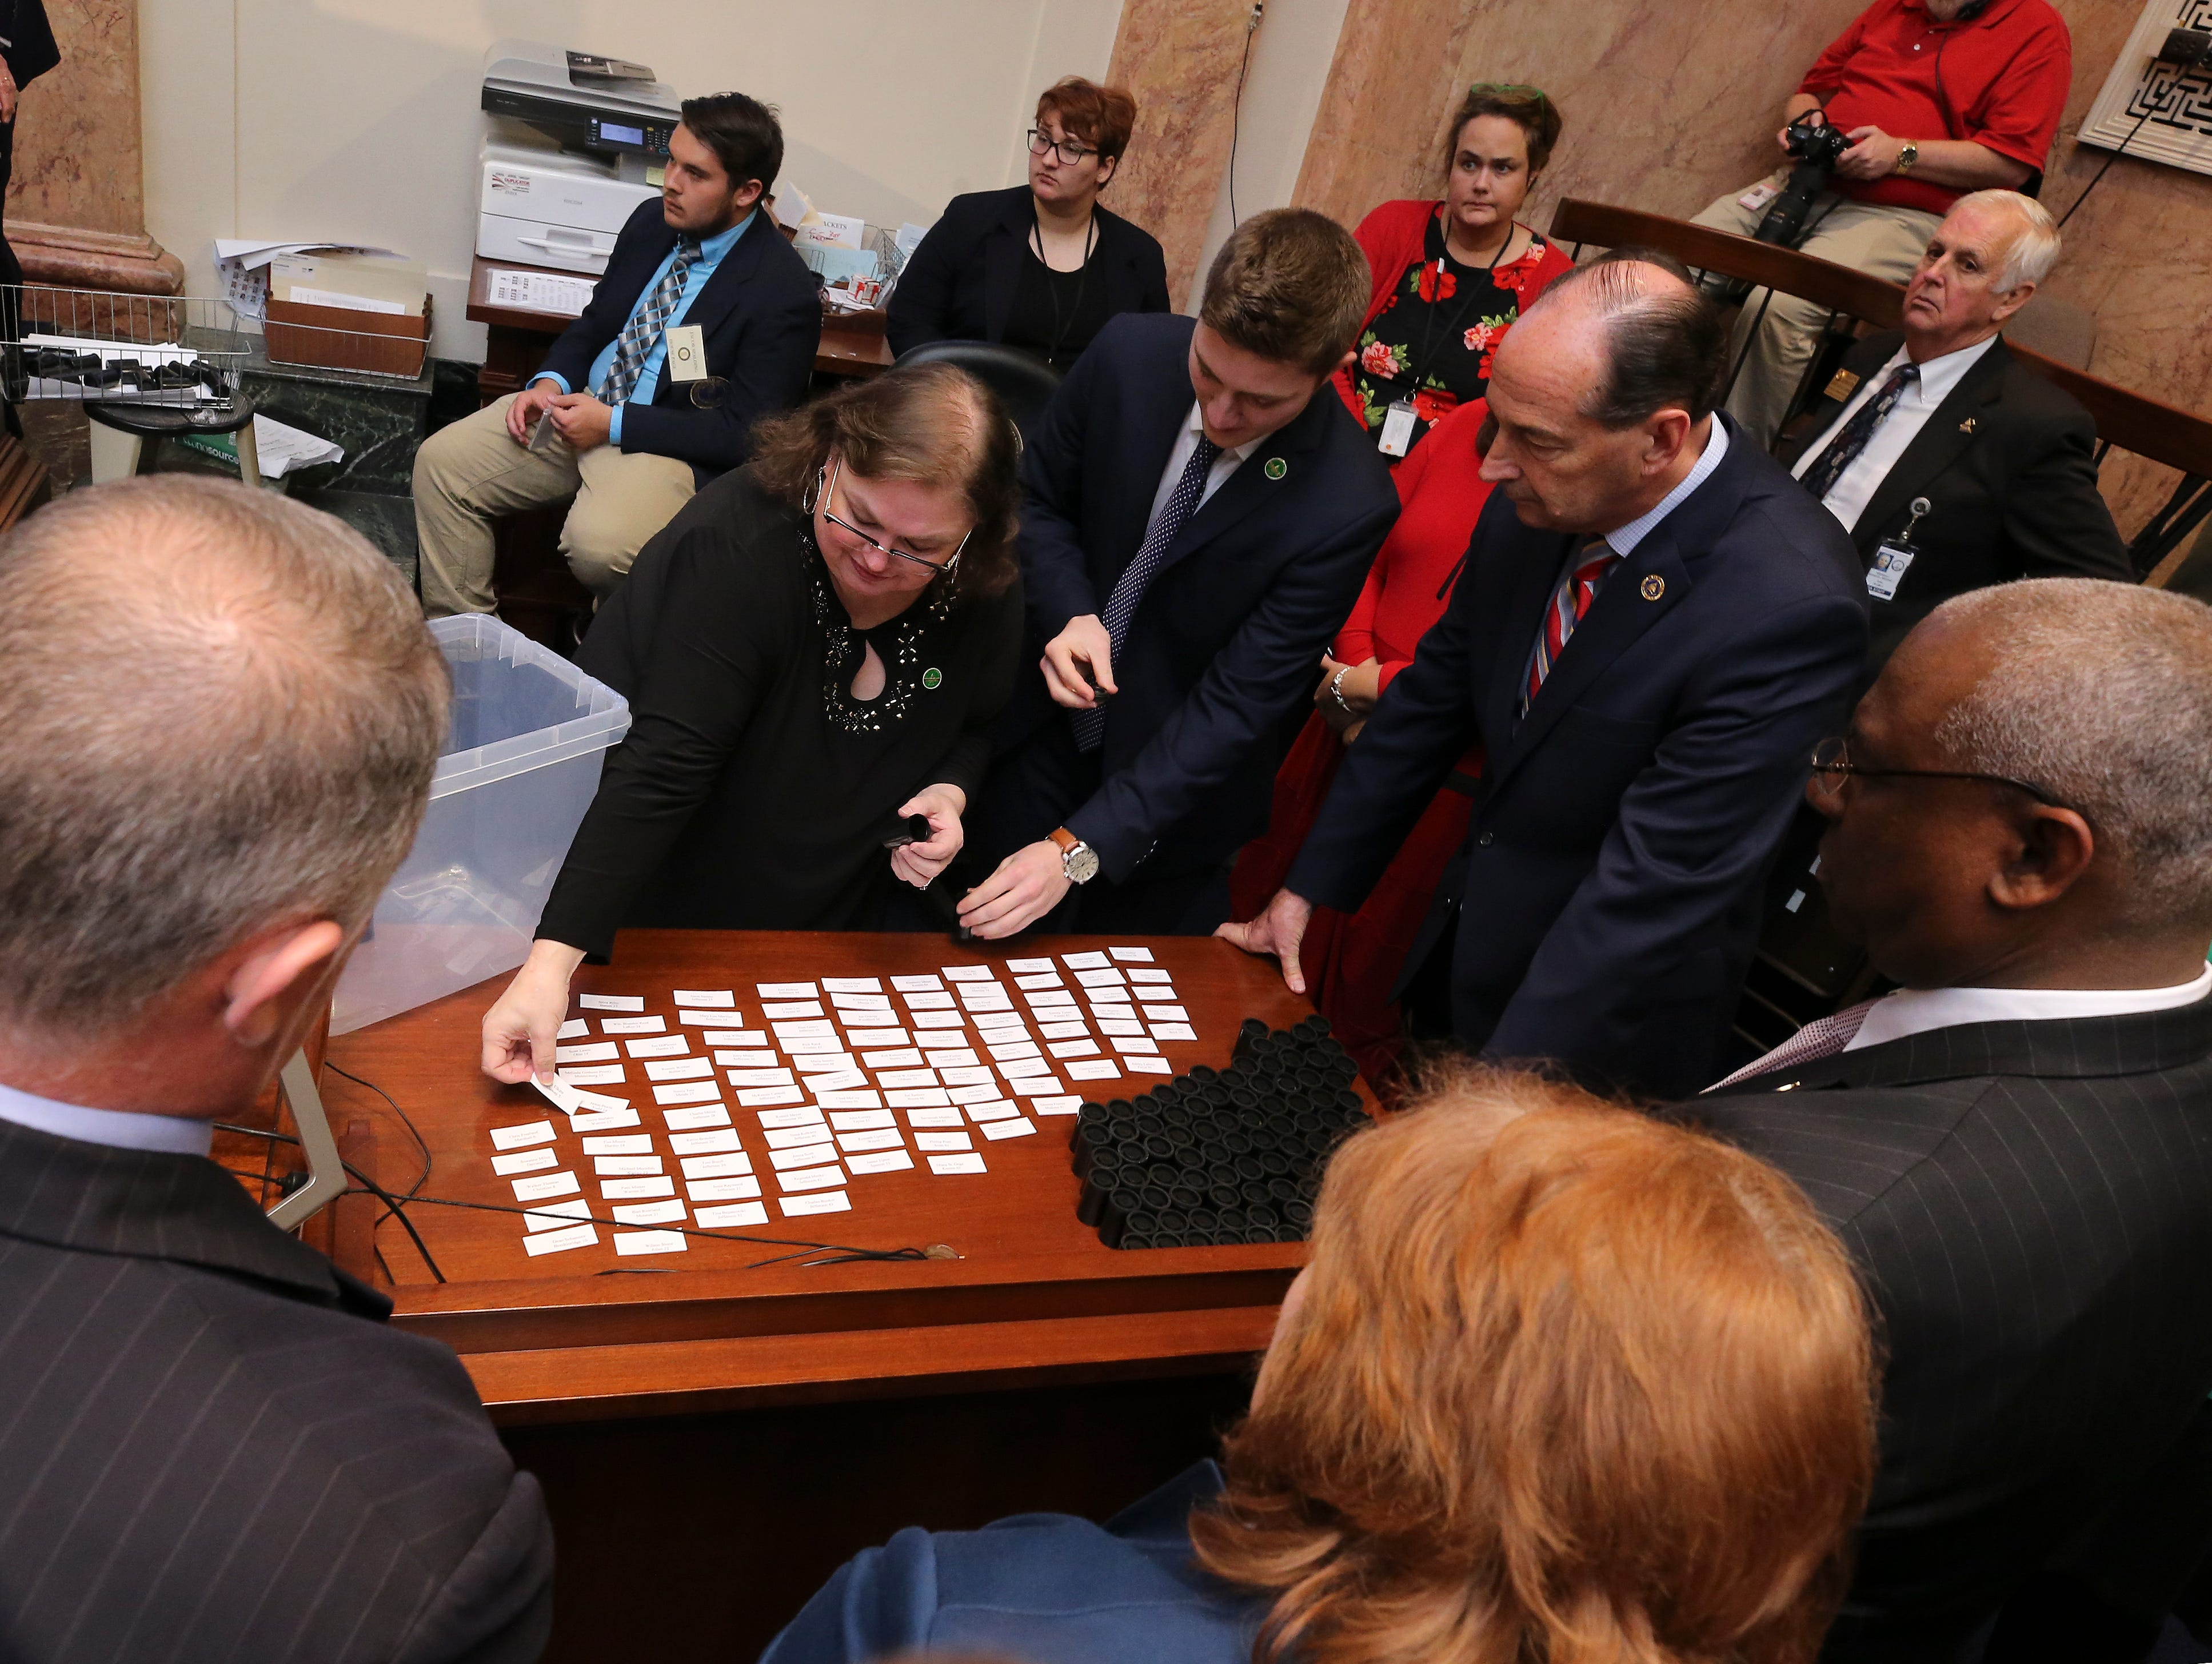 House clerk Melissa Bybee-Fields, center, laid out the names of House members to create a committee on committees to decide how to proceed on ruling of the disputed House seat for Jim Glenn who was elected to the House seat for Owensboro by one vote.  After placing the names in cannisters, she randomly selected them to form the committee. Jan. 8, 2019